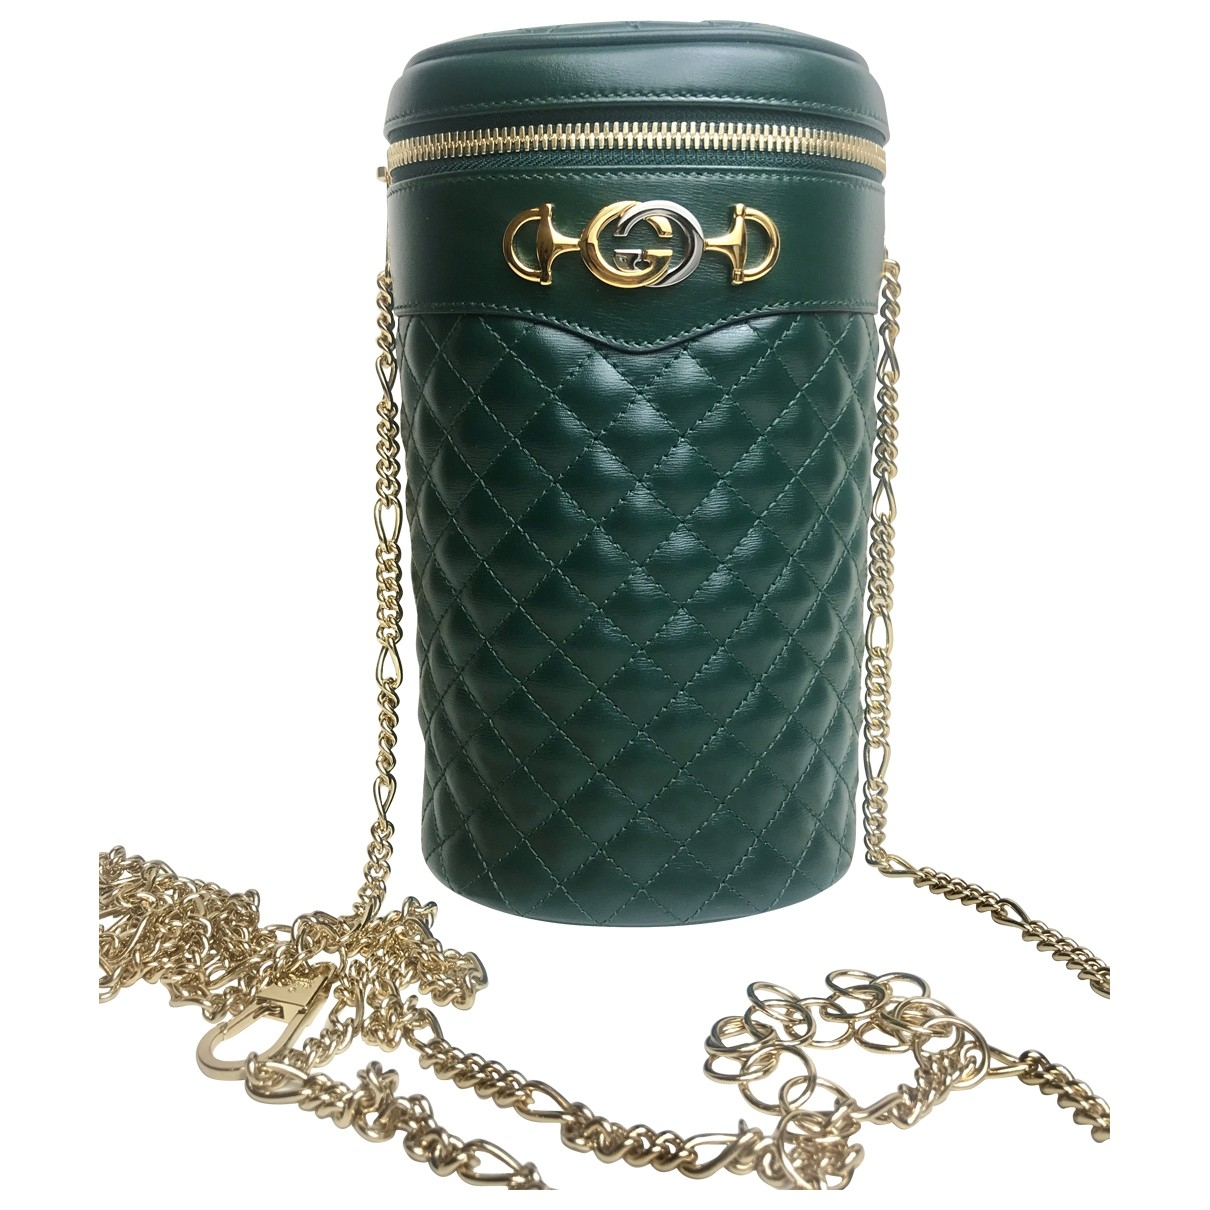 Gucci \N Green Leather handbag for Women \N